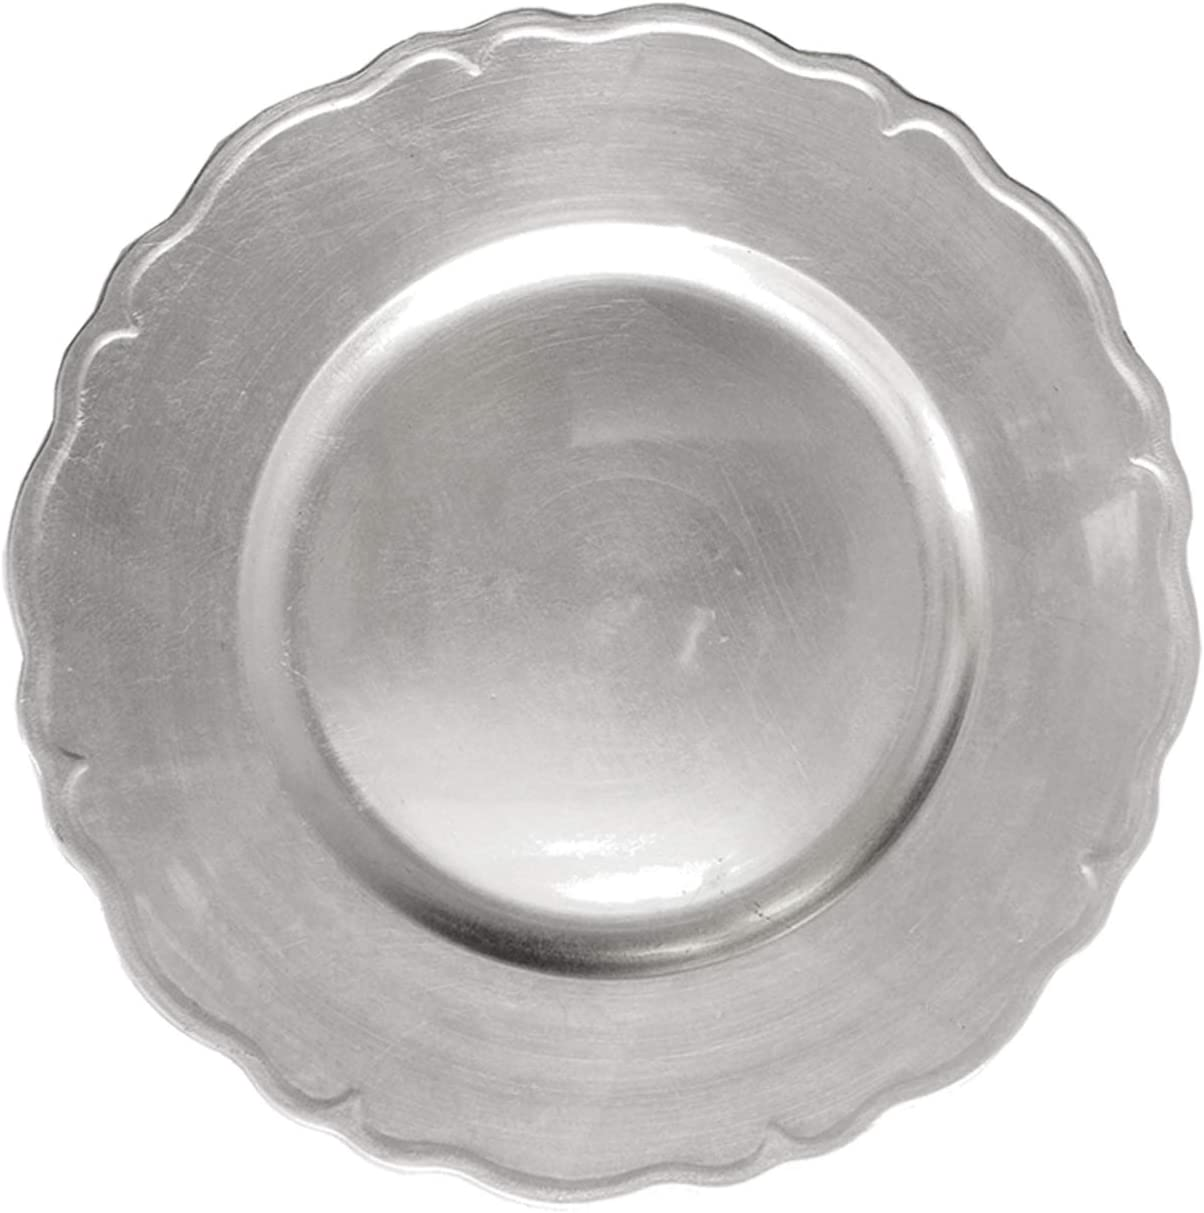 ChargeIt by Jay A215GR Round Regency Charger Plate Jay Imports